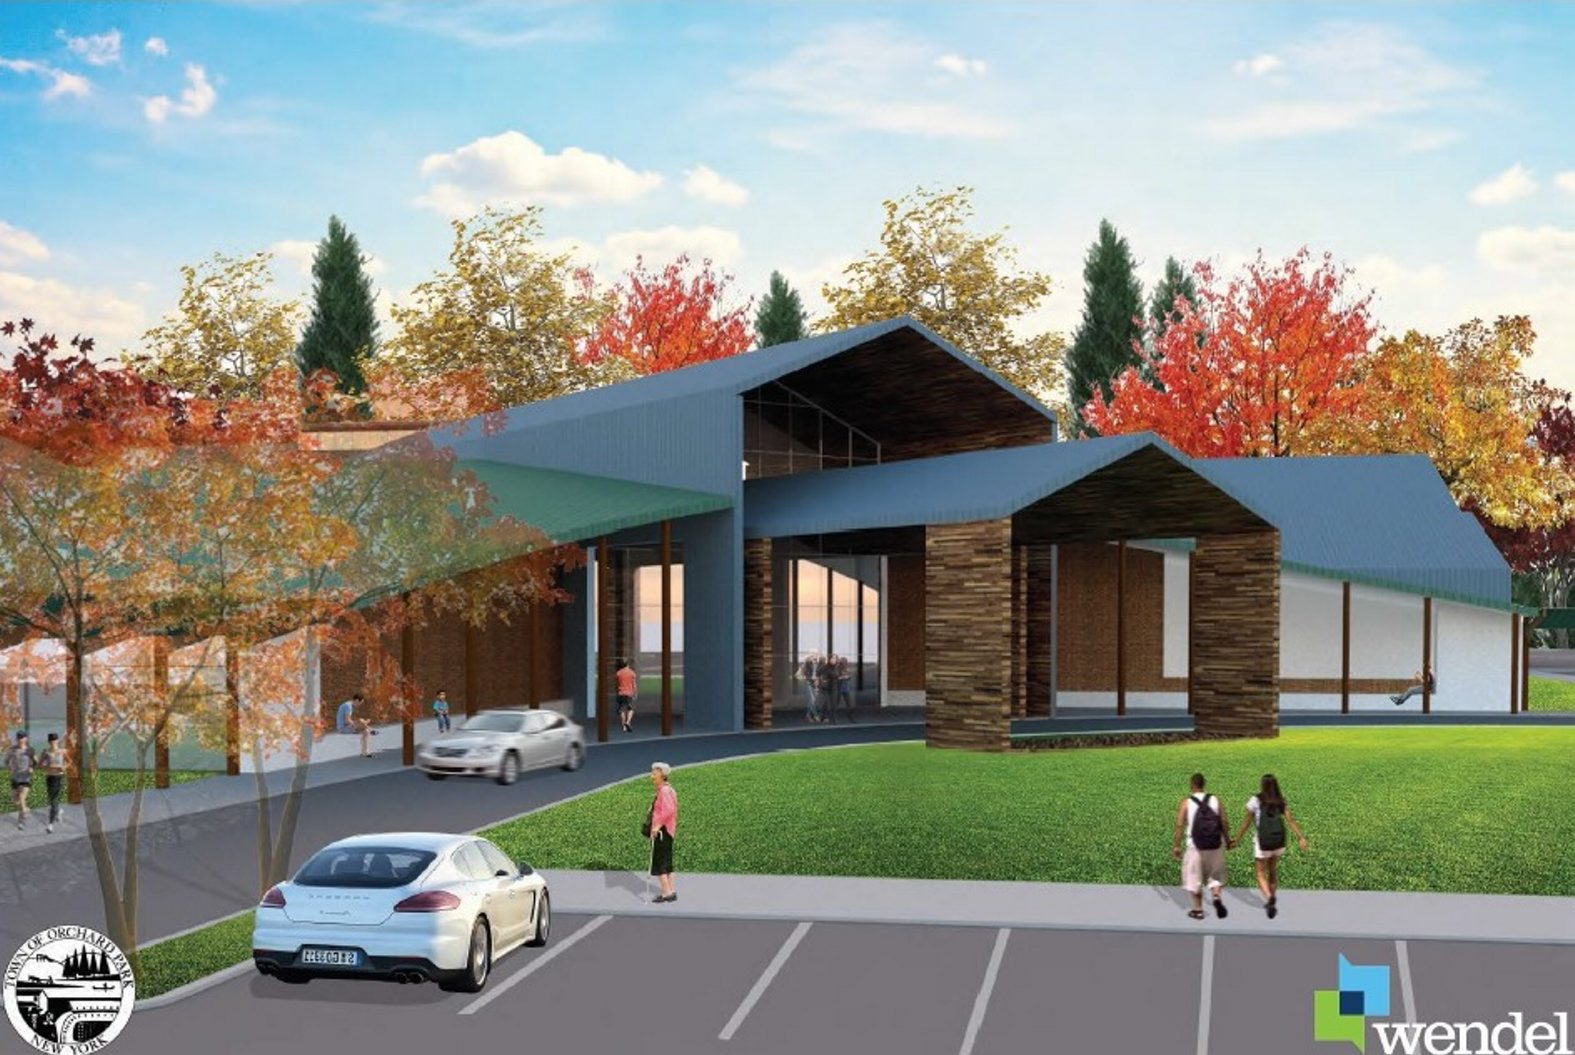 An architect's rendering of the proposed Orchard Park Community Center.